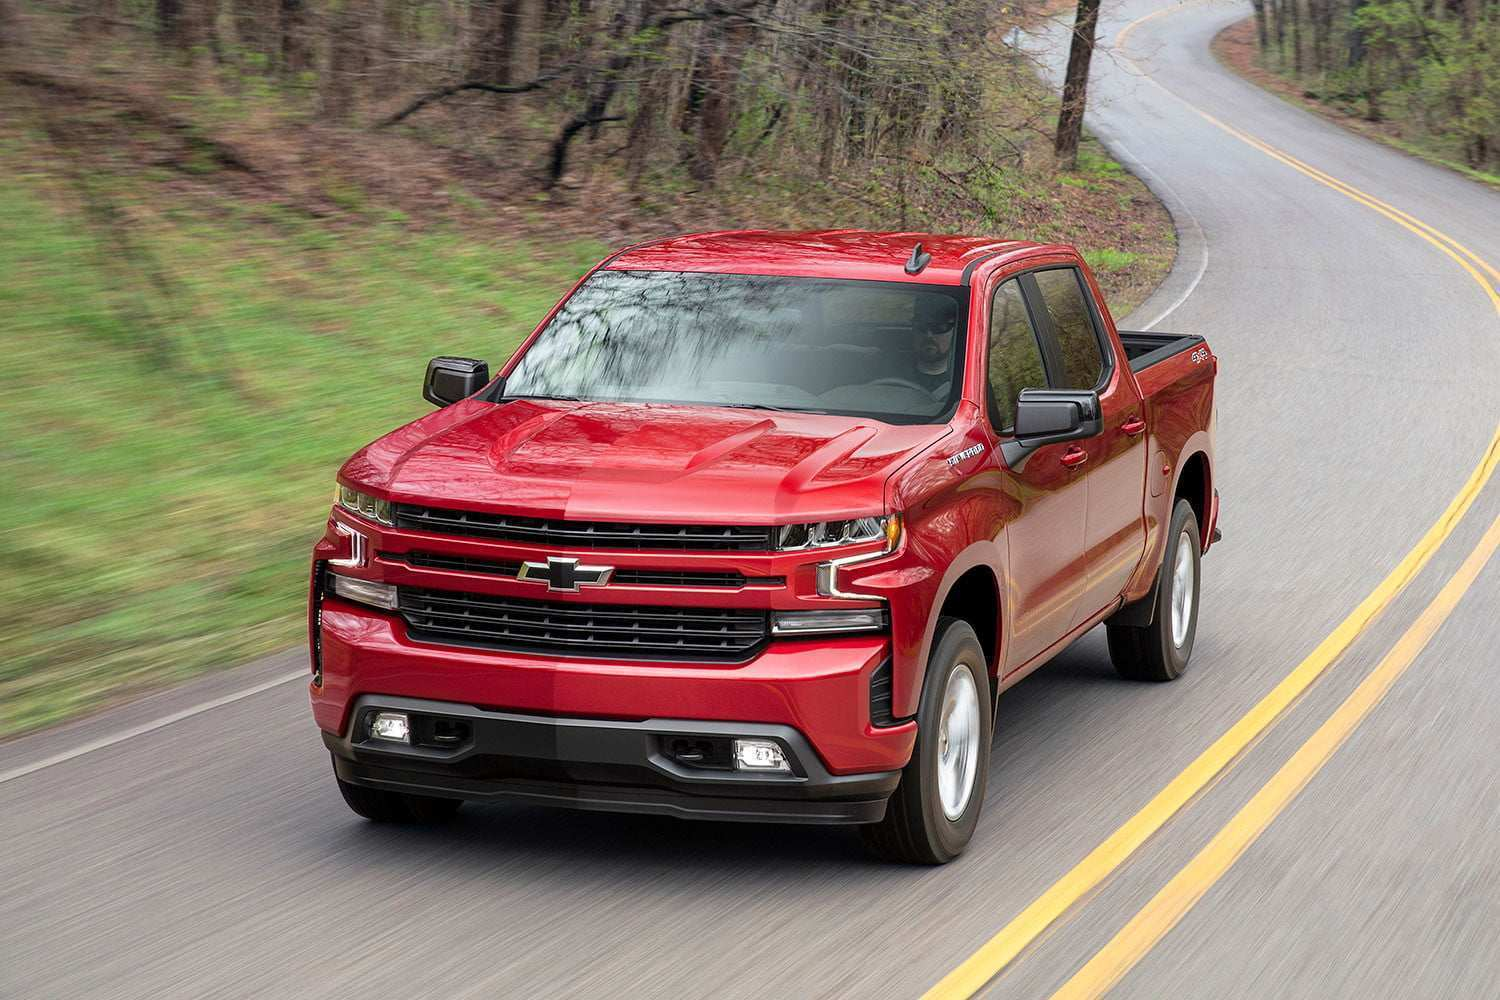 70 Great New 2019 Chevrolet Silverado Work Truck Concept Redesign And Review Style for New 2019 Chevrolet Silverado Work Truck Concept Redesign And Review